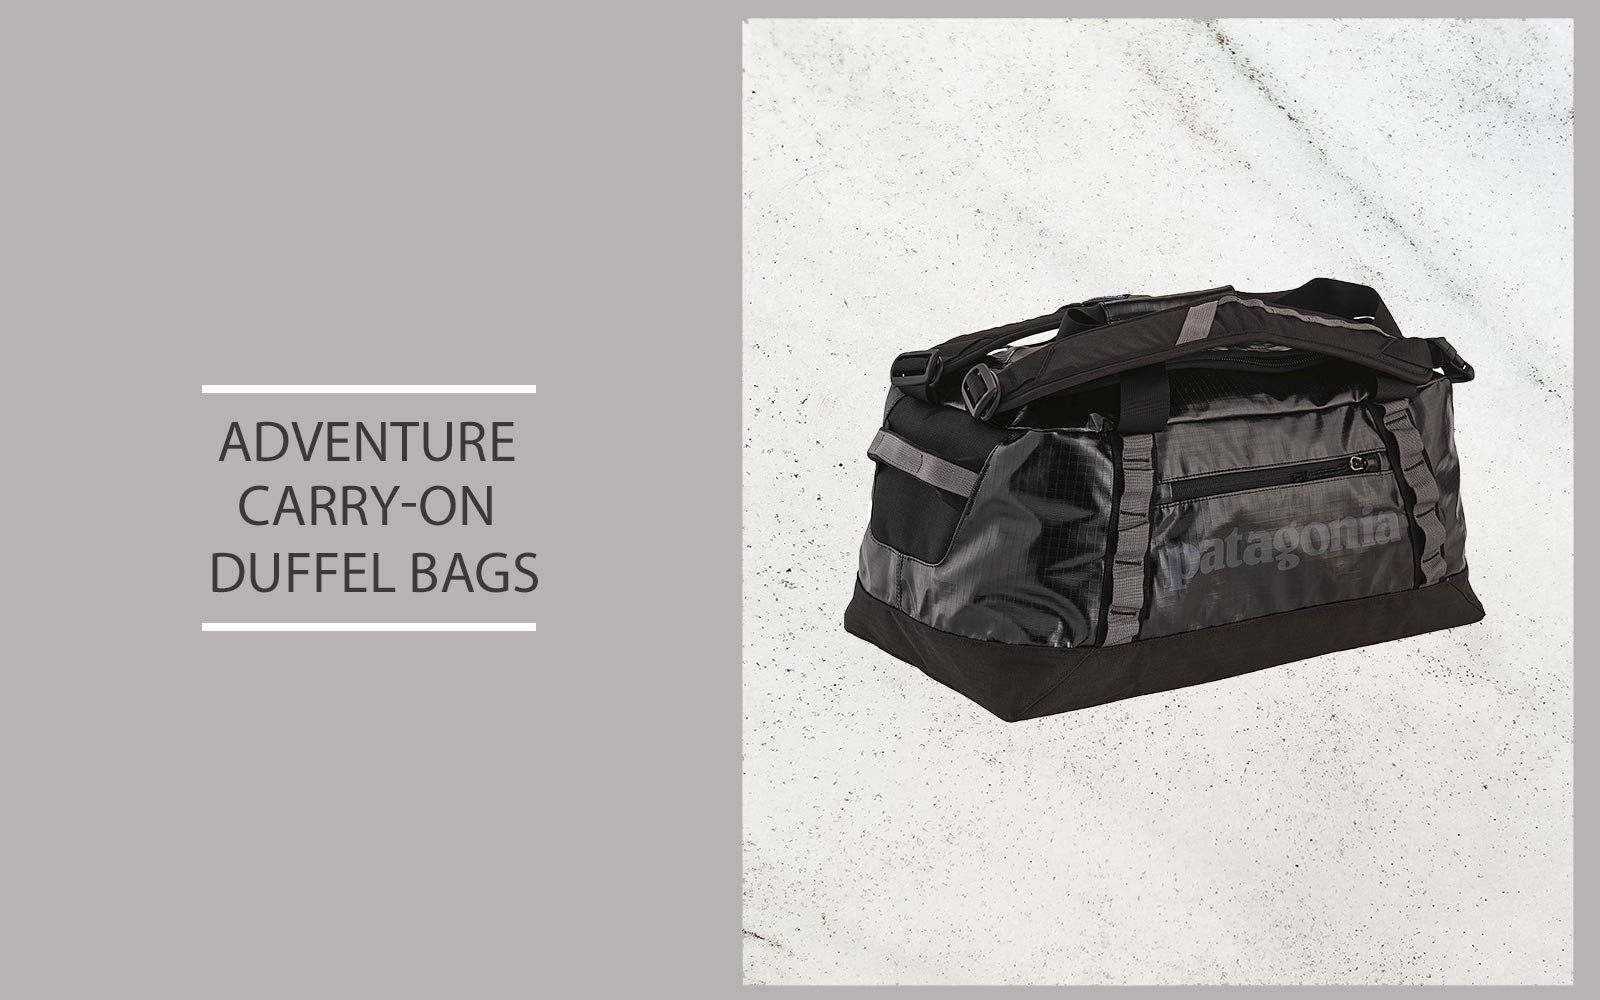 Adventure Carry-on Duffel Bags